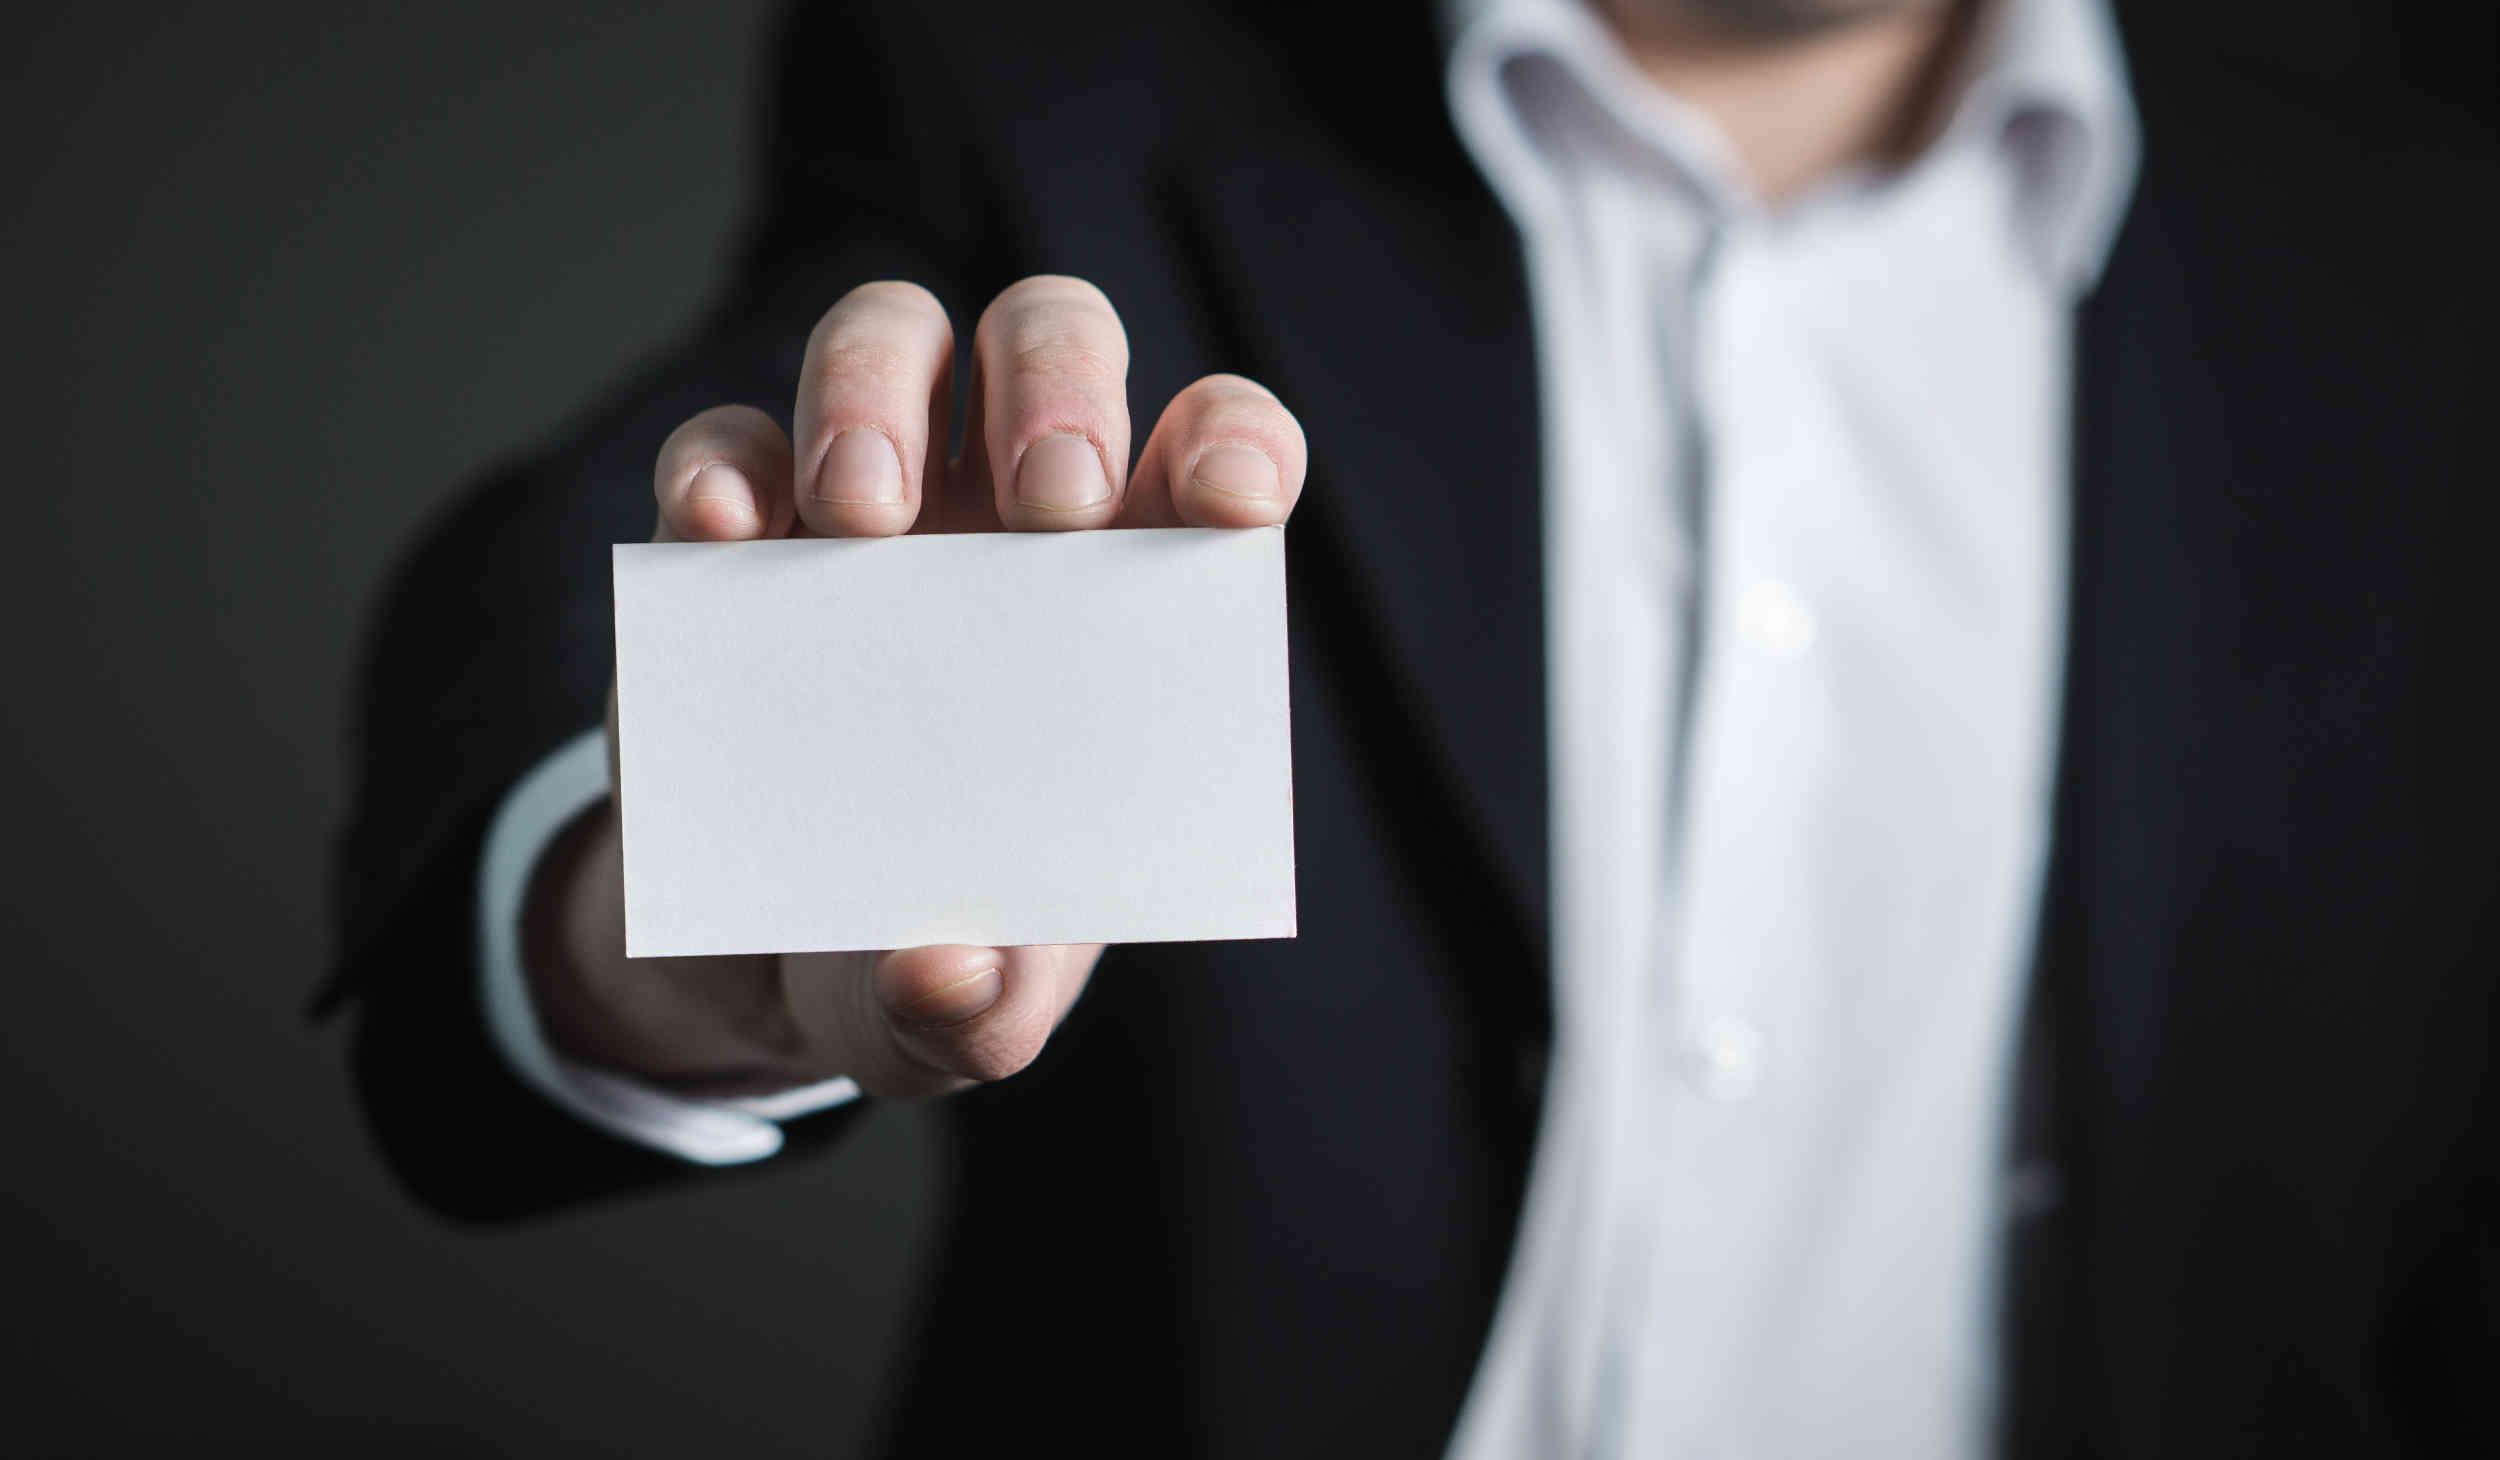 Rules when you get a business card - NC Business Blog